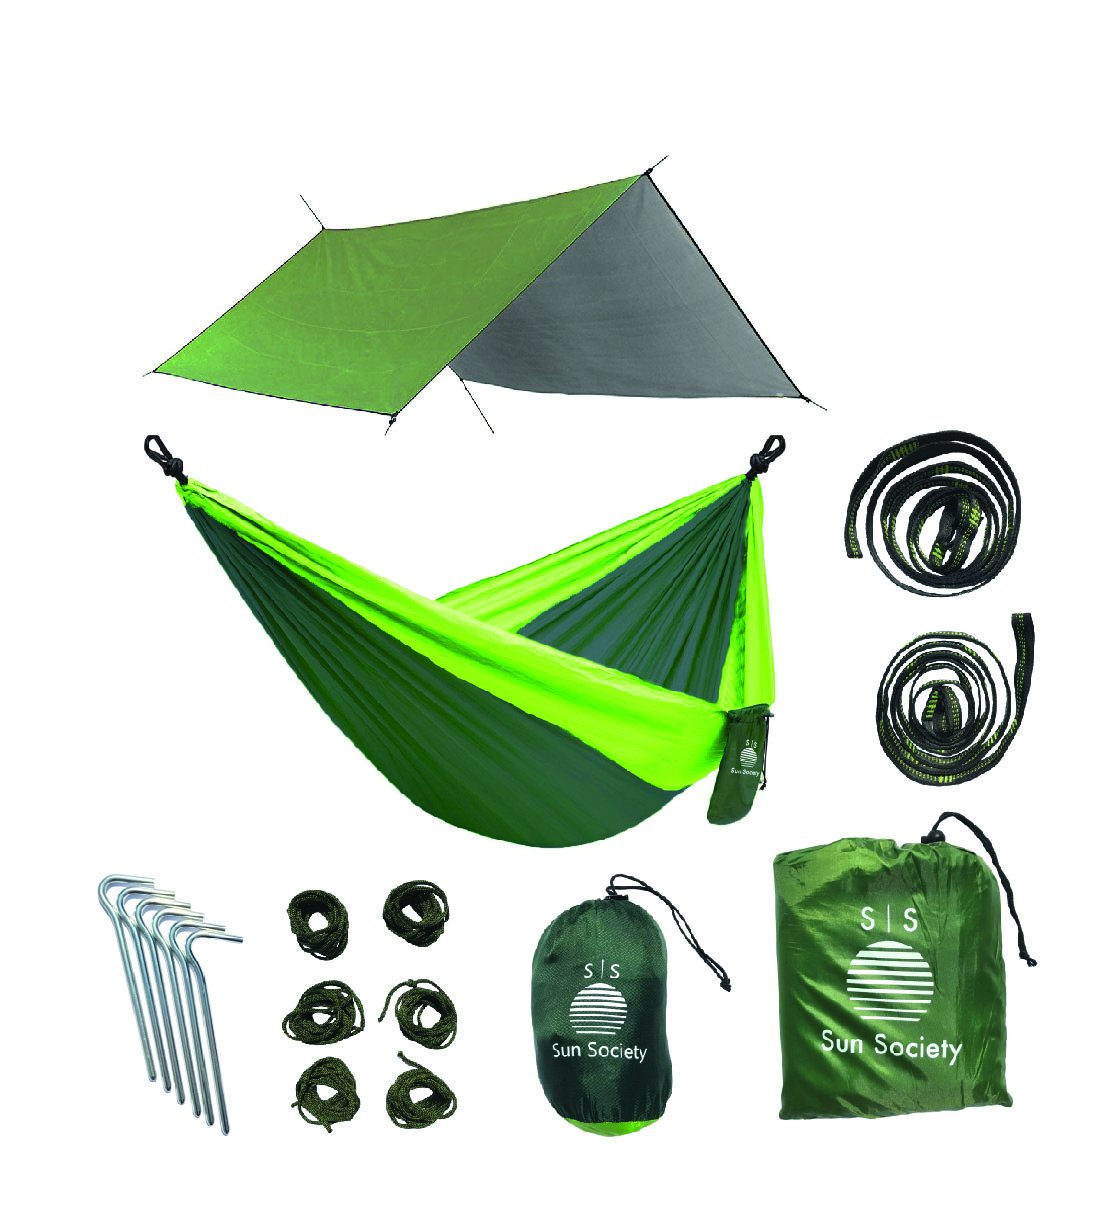 Extra Large軽量リップストップキャンプハンモック、防水雨よけバンドル。高品質Camping Gear for the Serious Camper。 B075SSQWBG